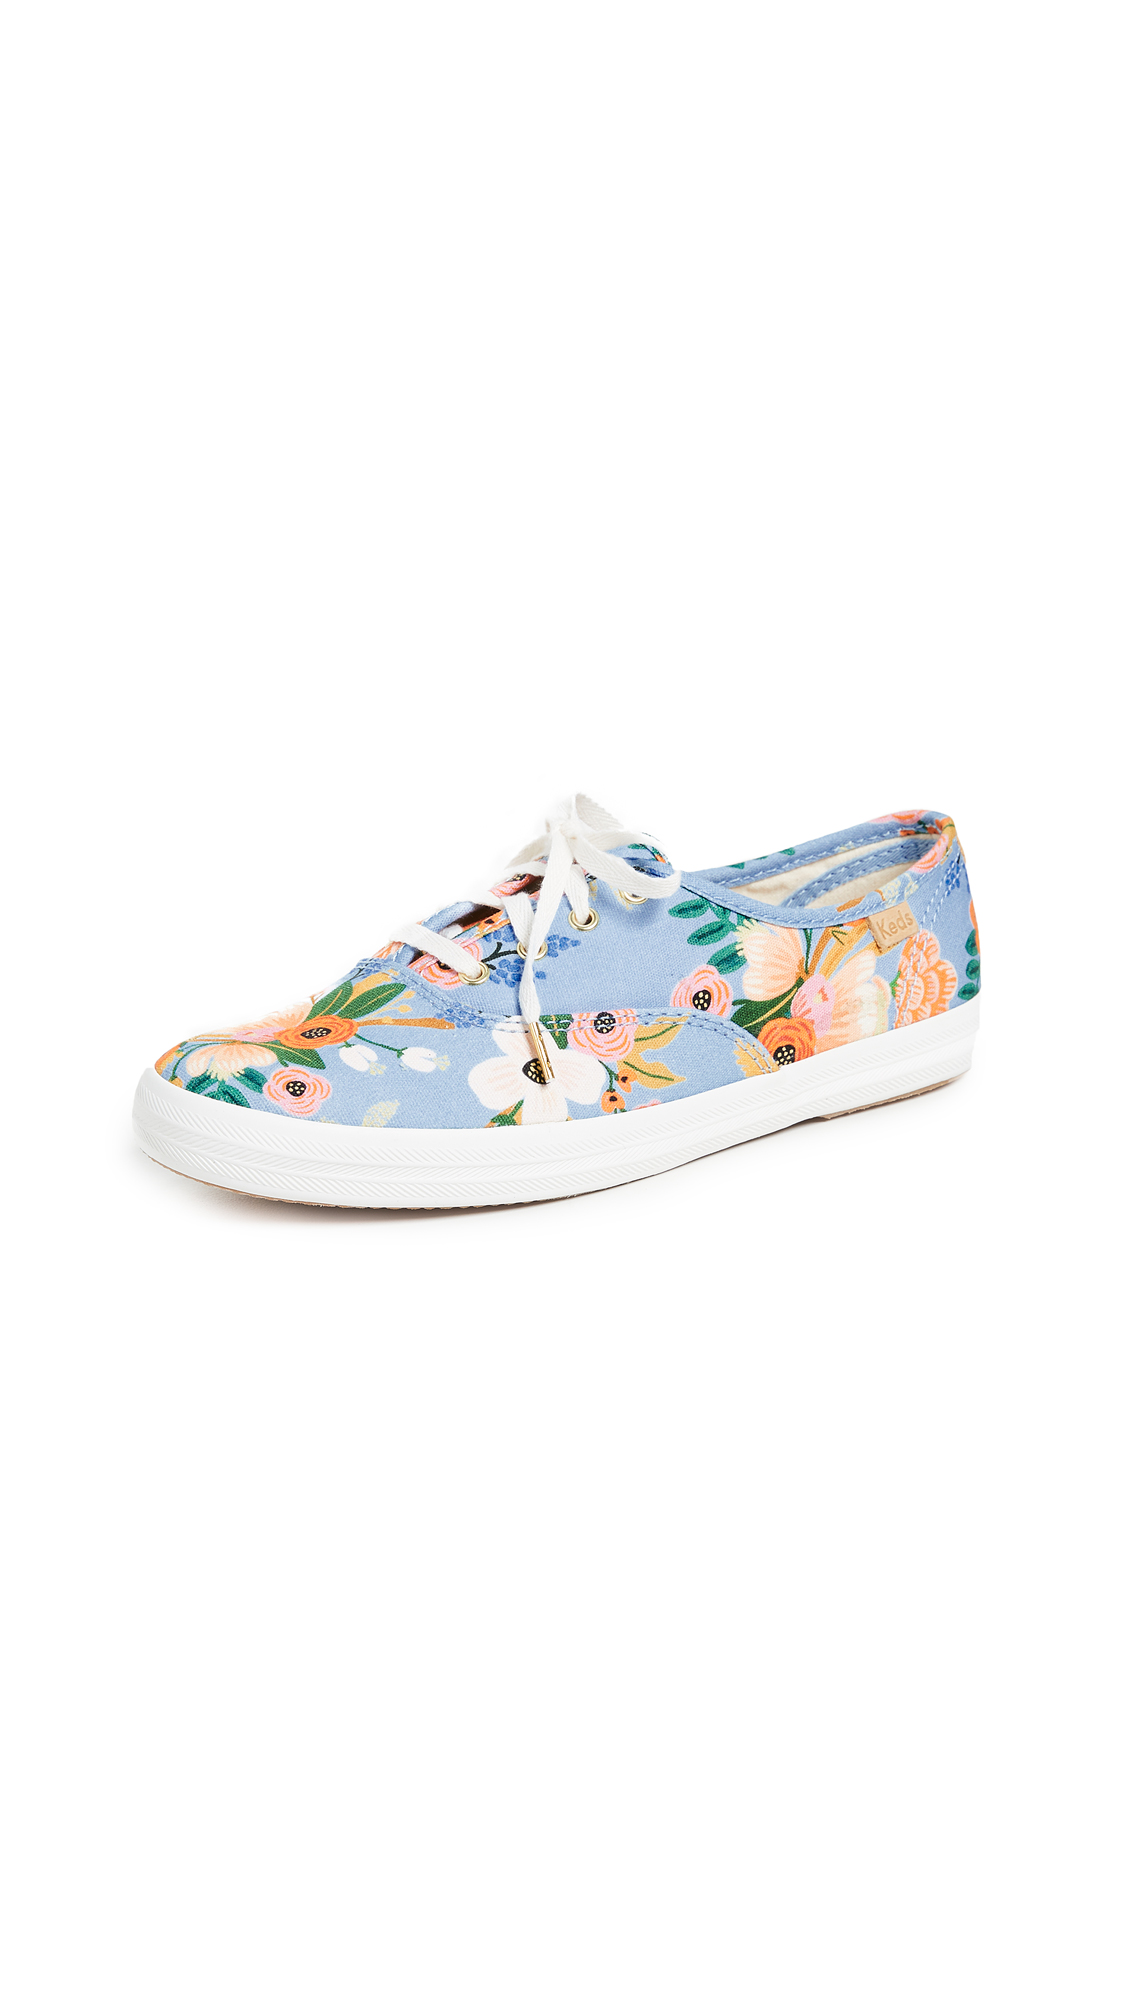 Keds x Rifle Paper CO Sneakers - Periwinkle